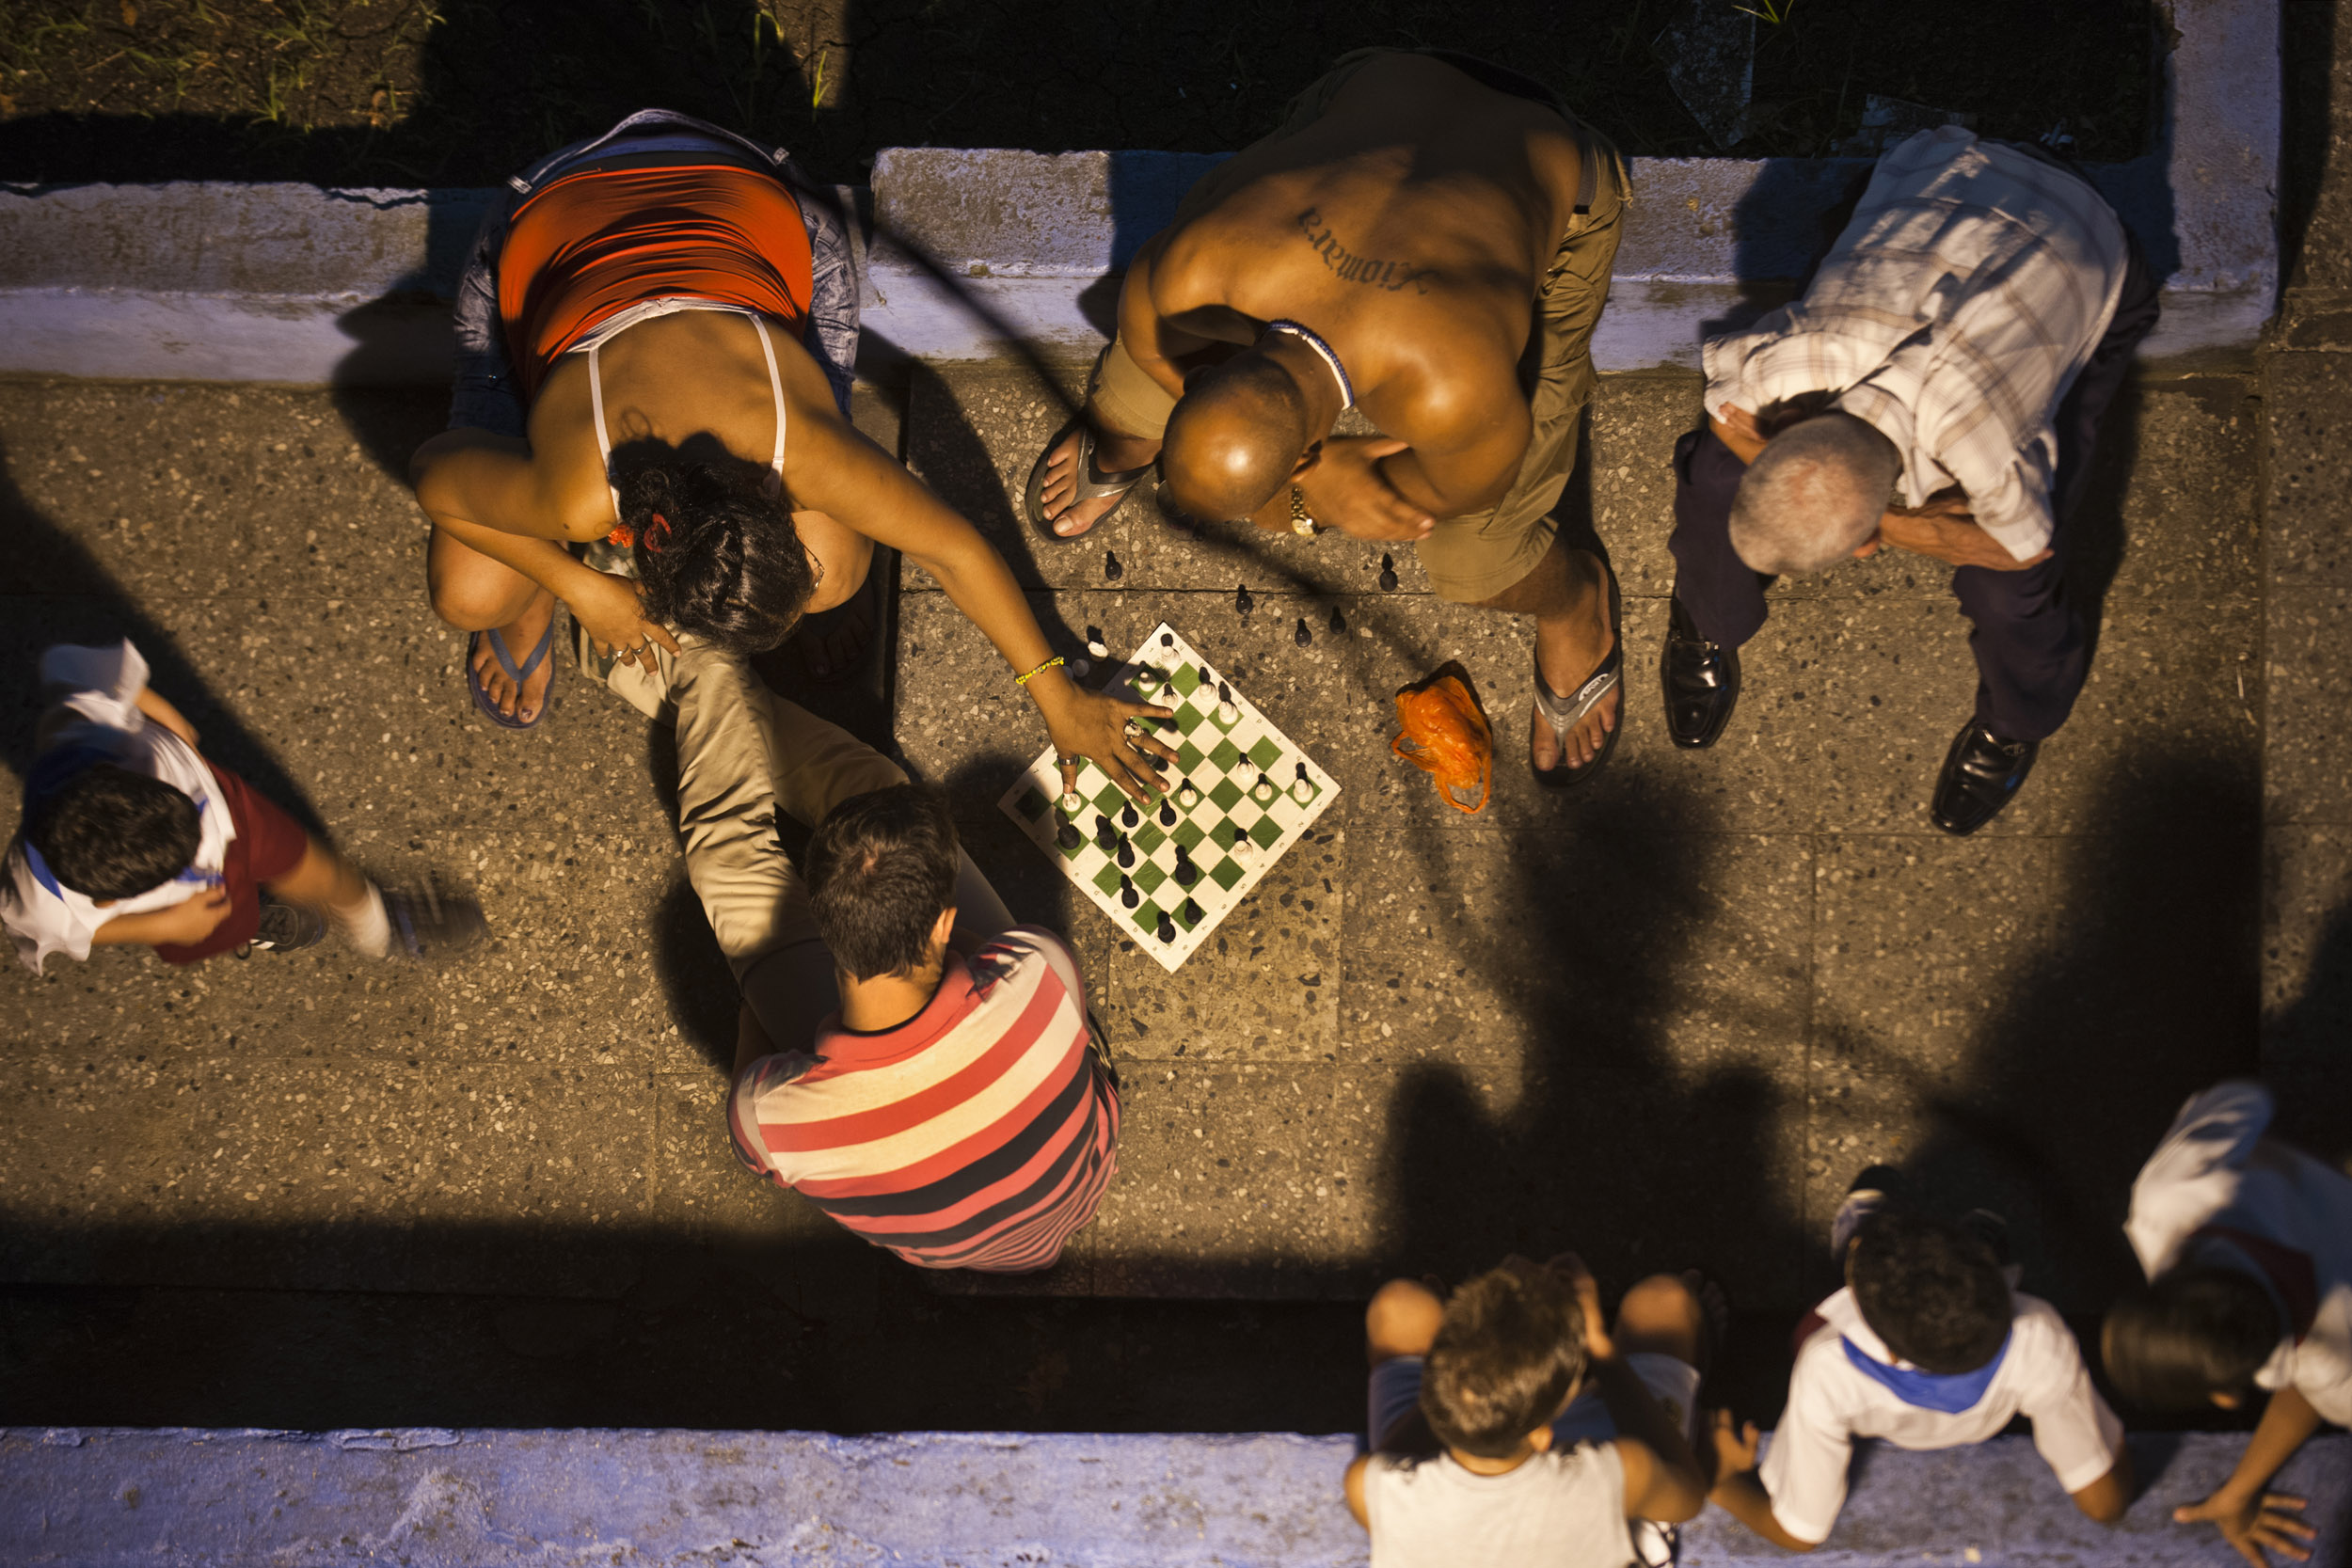 Habana 03 - Prints 2. Ethnoland - Hector Garrido, Aerial and human photography